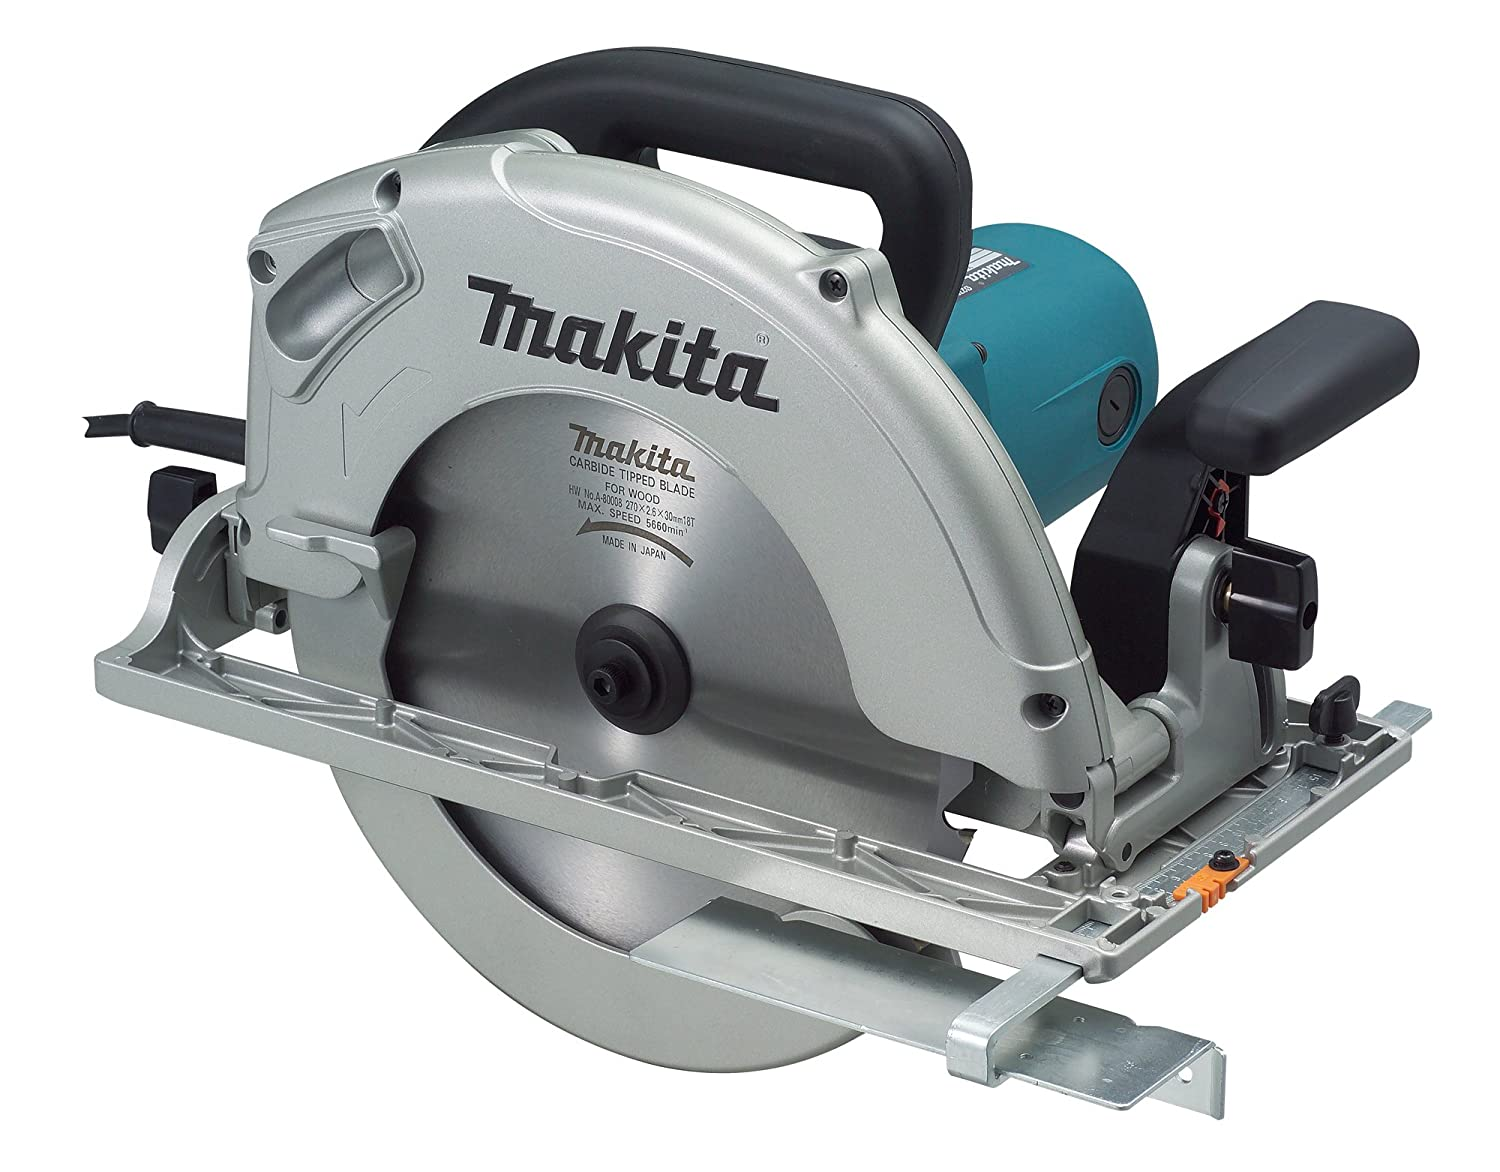 Makita 5104 14 amp 10 14 inch circular saw power circular saws makita 5104 14 amp 10 14 inch circular saw power circular saws amazon greentooth Images